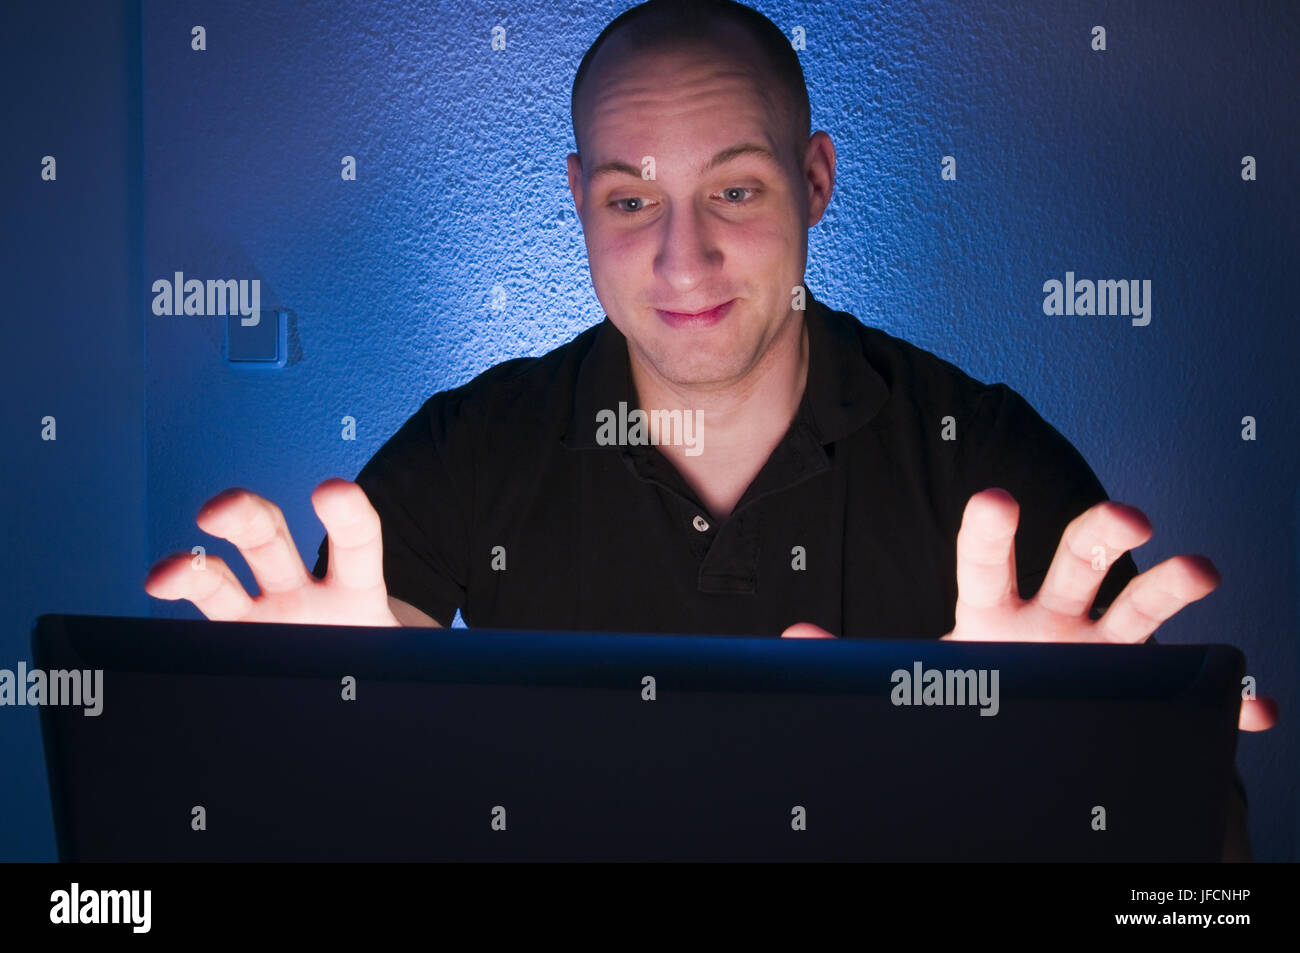 obscure on the screen - Stock Image